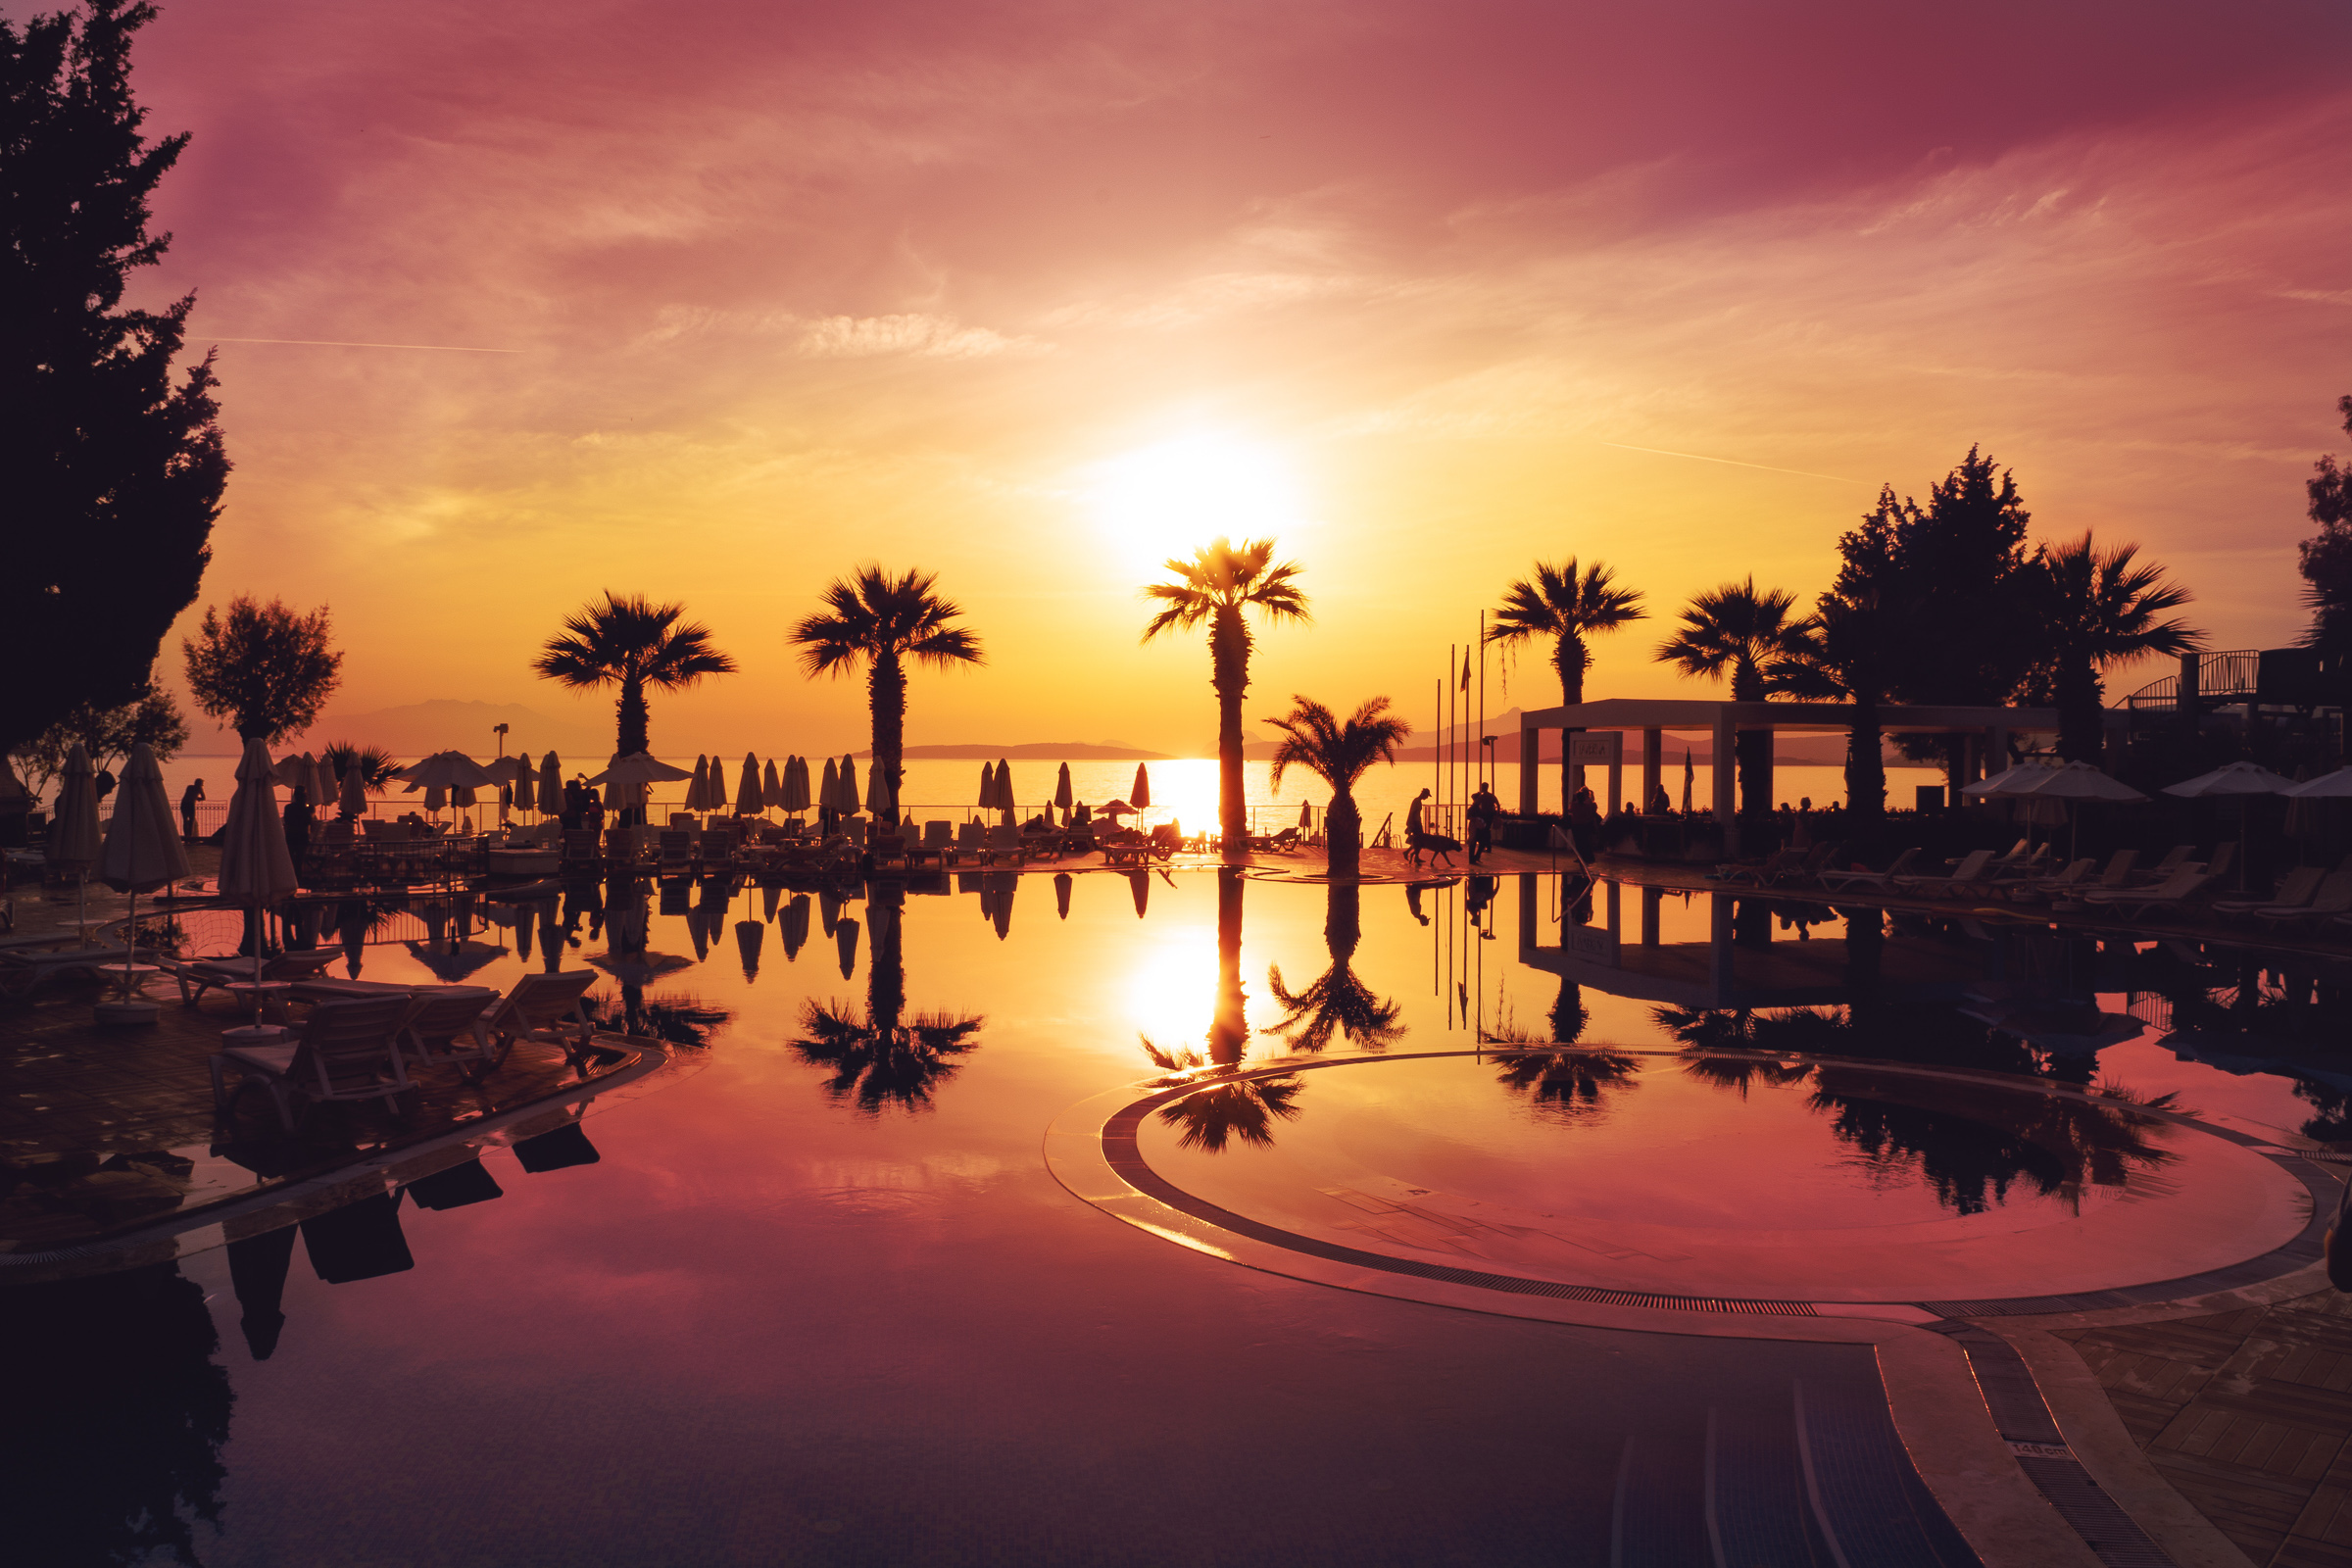 Beautiful sunset silhouetting palm trees over infinity pool at resort